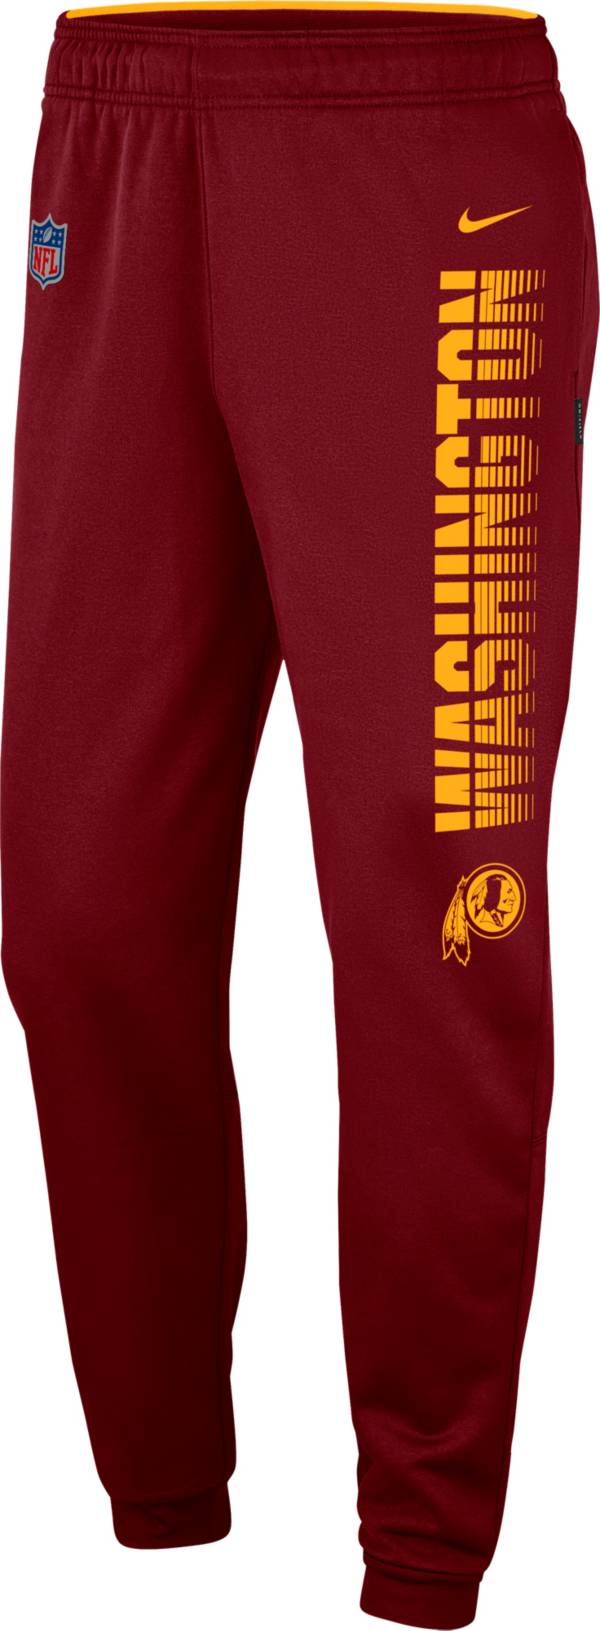 Nike Men's Washington Redskins Sideline Therma-FIT Performance Red Pants product image